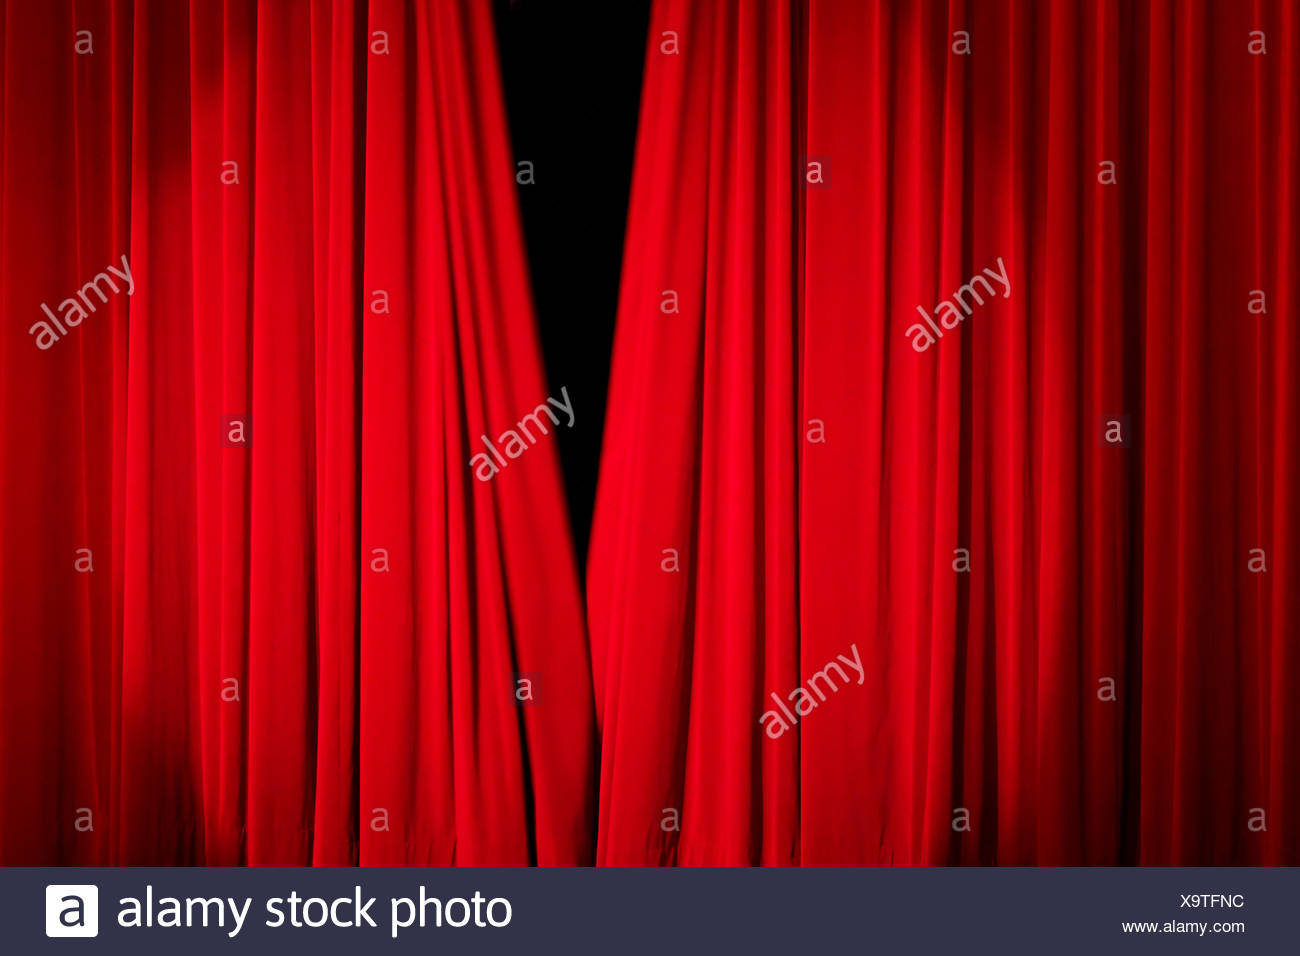 red curtain - Stock Image